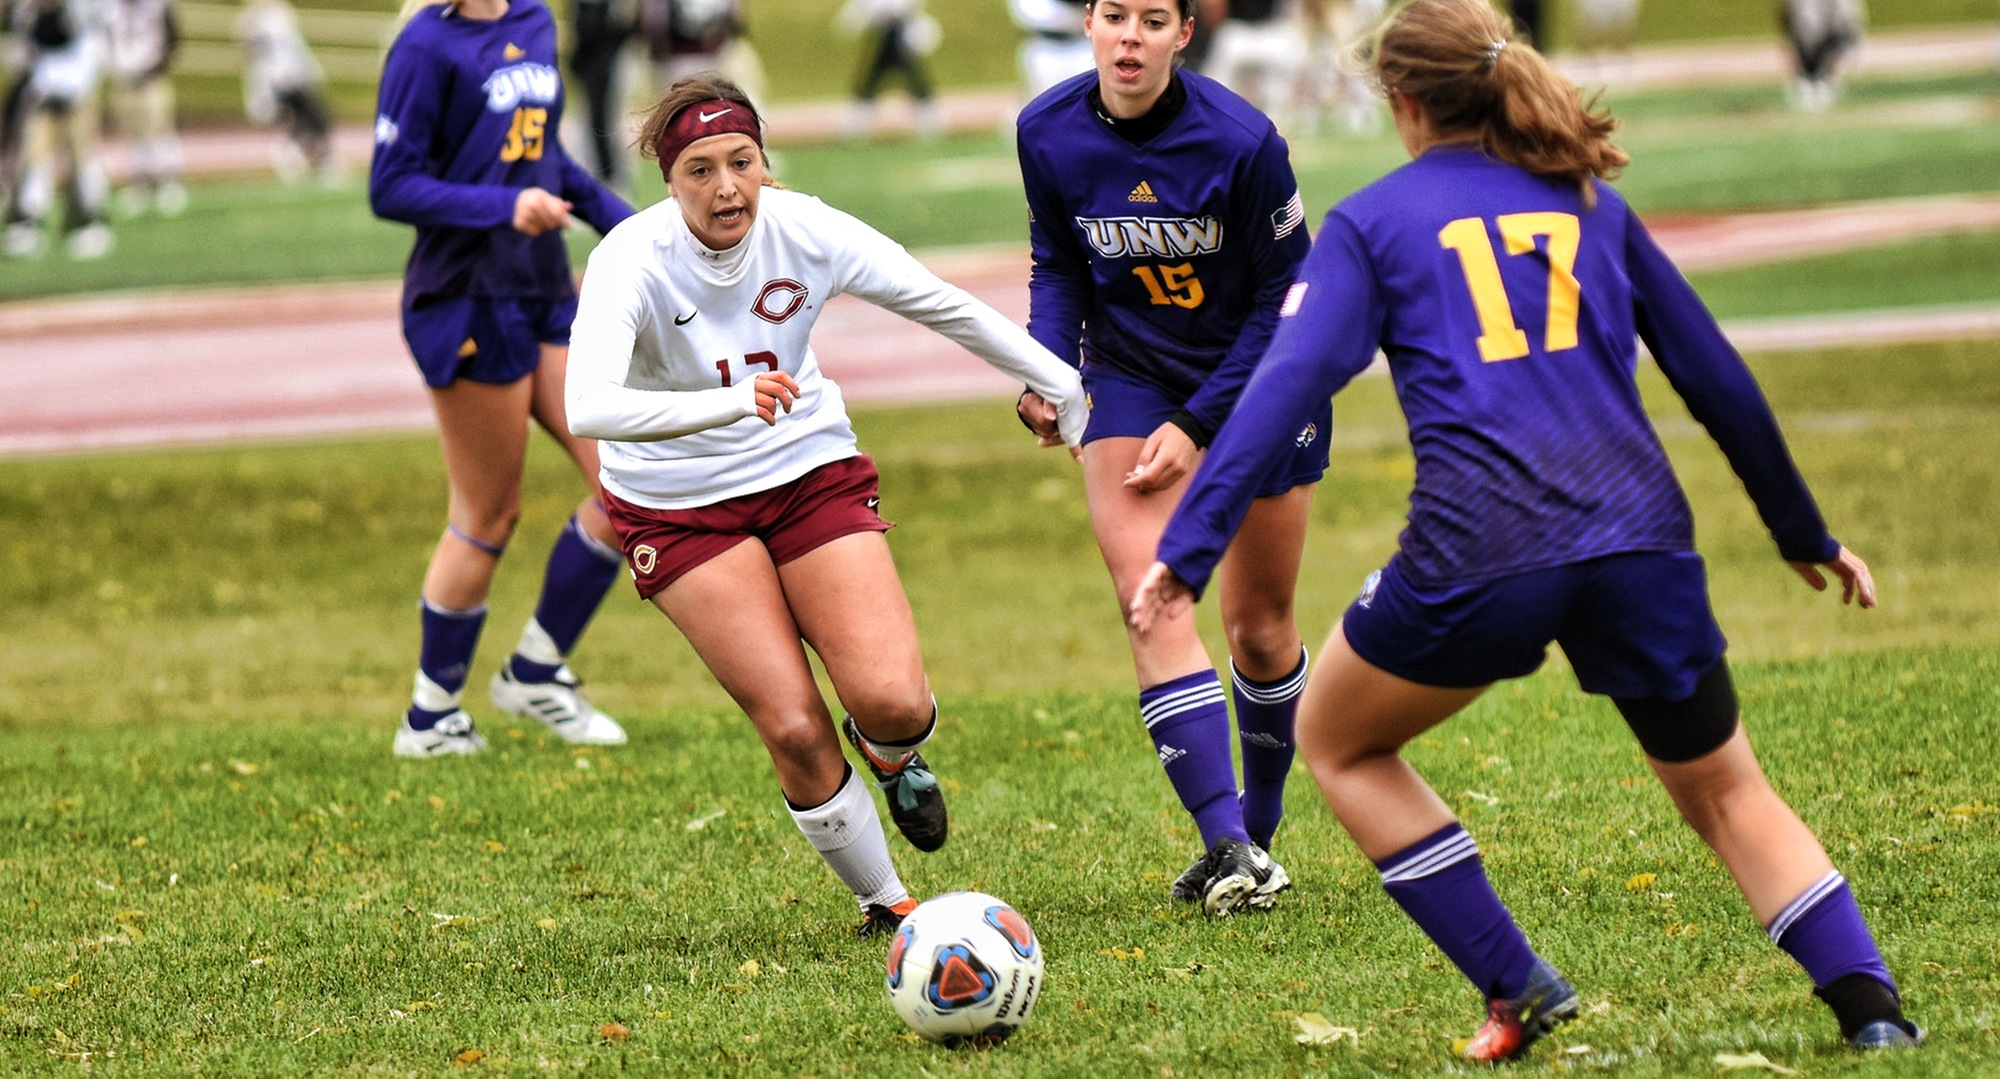 Kalli Baarstad goes after the ball in the second half of the Cobbers' 1-1 2OT tie with Northwestern. She scored the lone goal of the game for CC in the eighth minute of play.